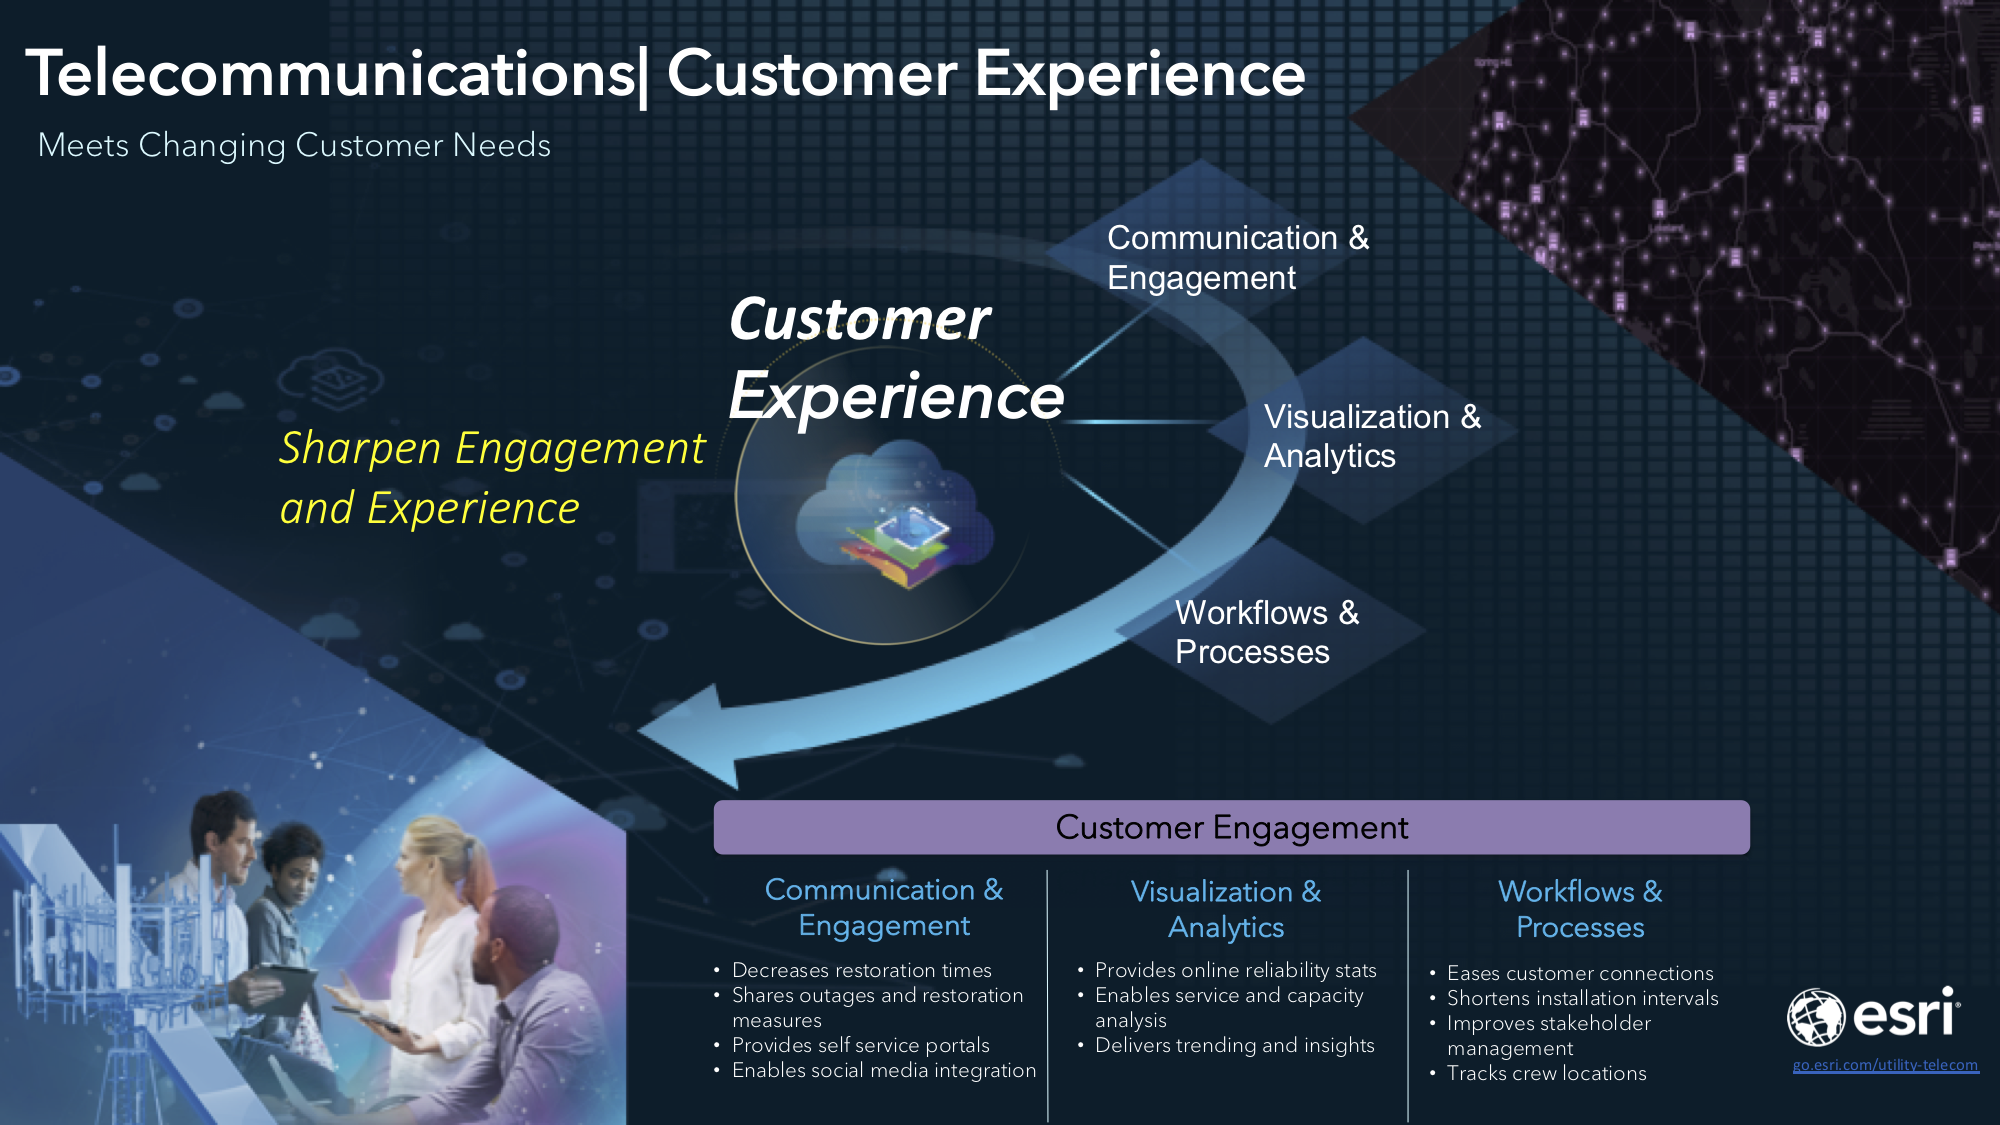 Telecommunications: Customer Experience